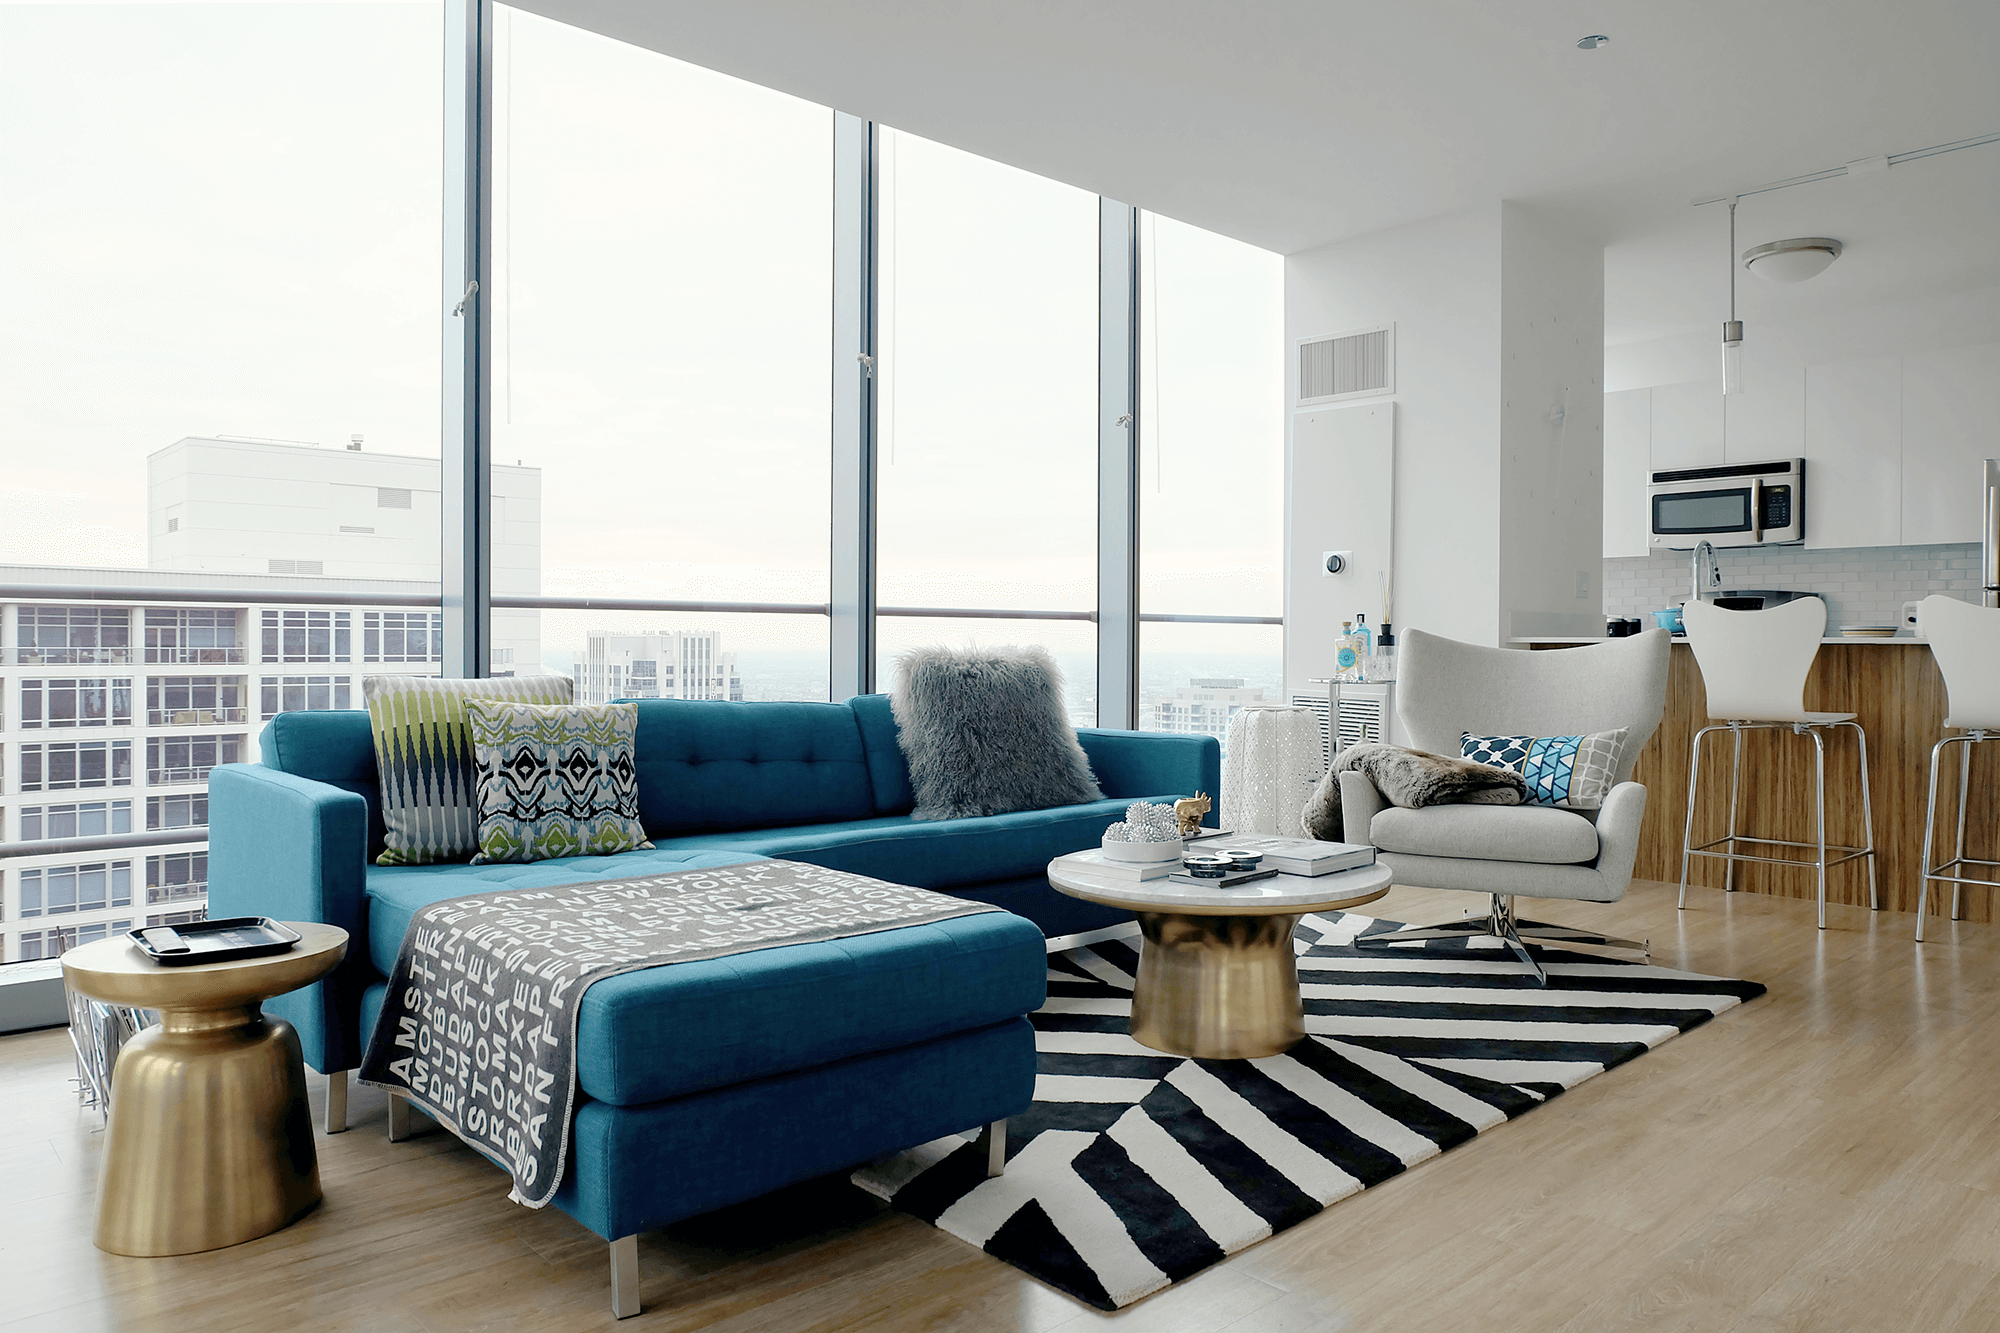 How To Save Money While Decorating Your Living Room Apartment Therapy